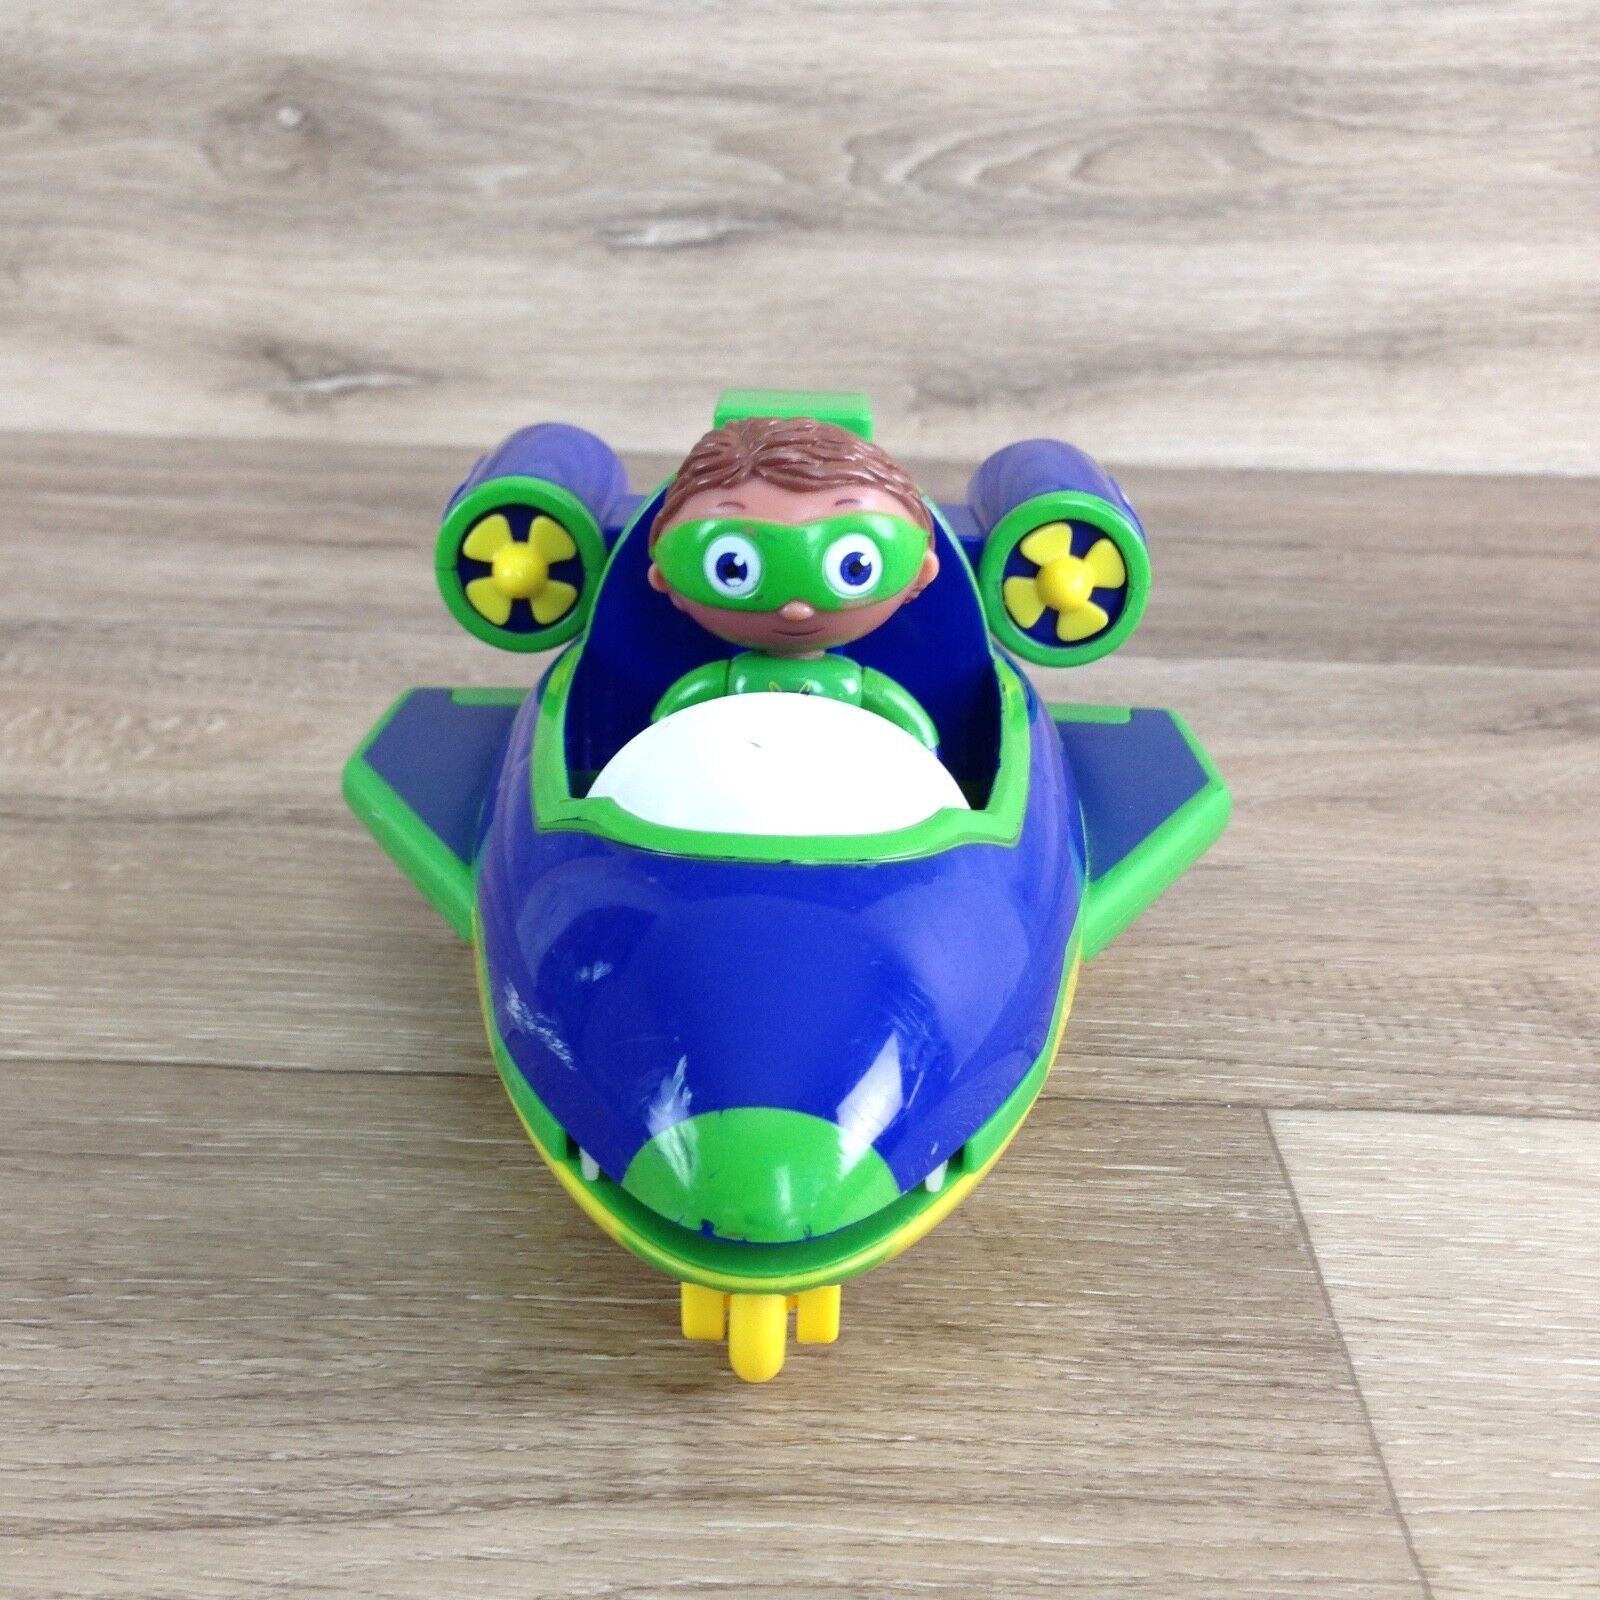 Large 6  Super Why by Learning Curve Wyatt Hovering Why Flyer Hovercraft PBS